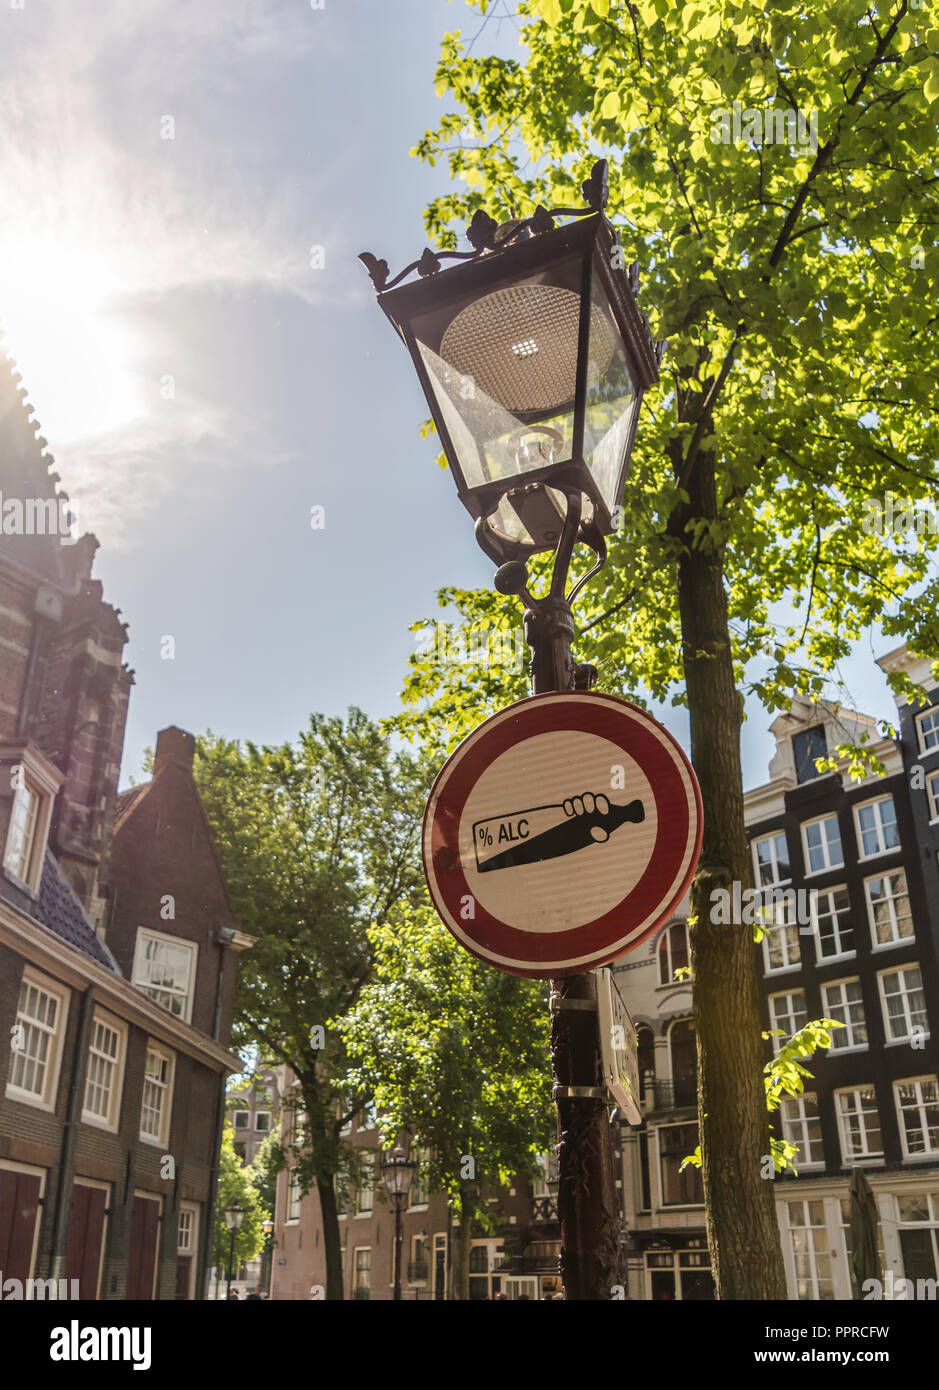 Alcohol prohibition sign on the vintage street lamp in Amsterdam city, Netherlands. The sign prohibits drinking alcohol beverages on the street. - Stock Image